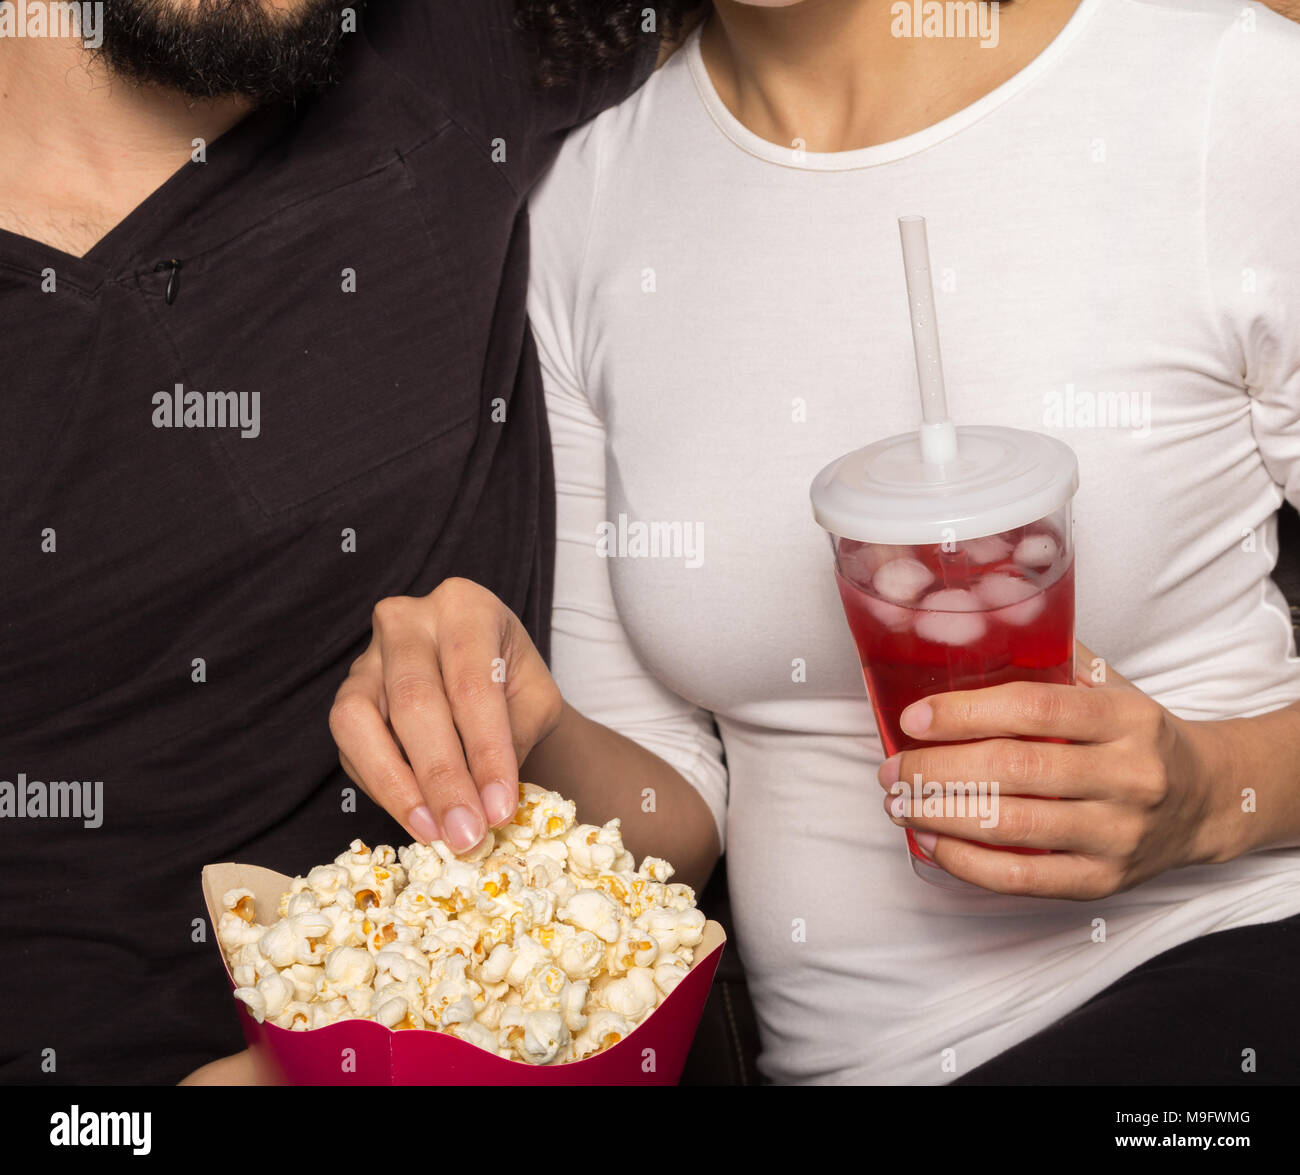 free alone image eats a glasses watches of man the stock movie popcorn photo royalty background